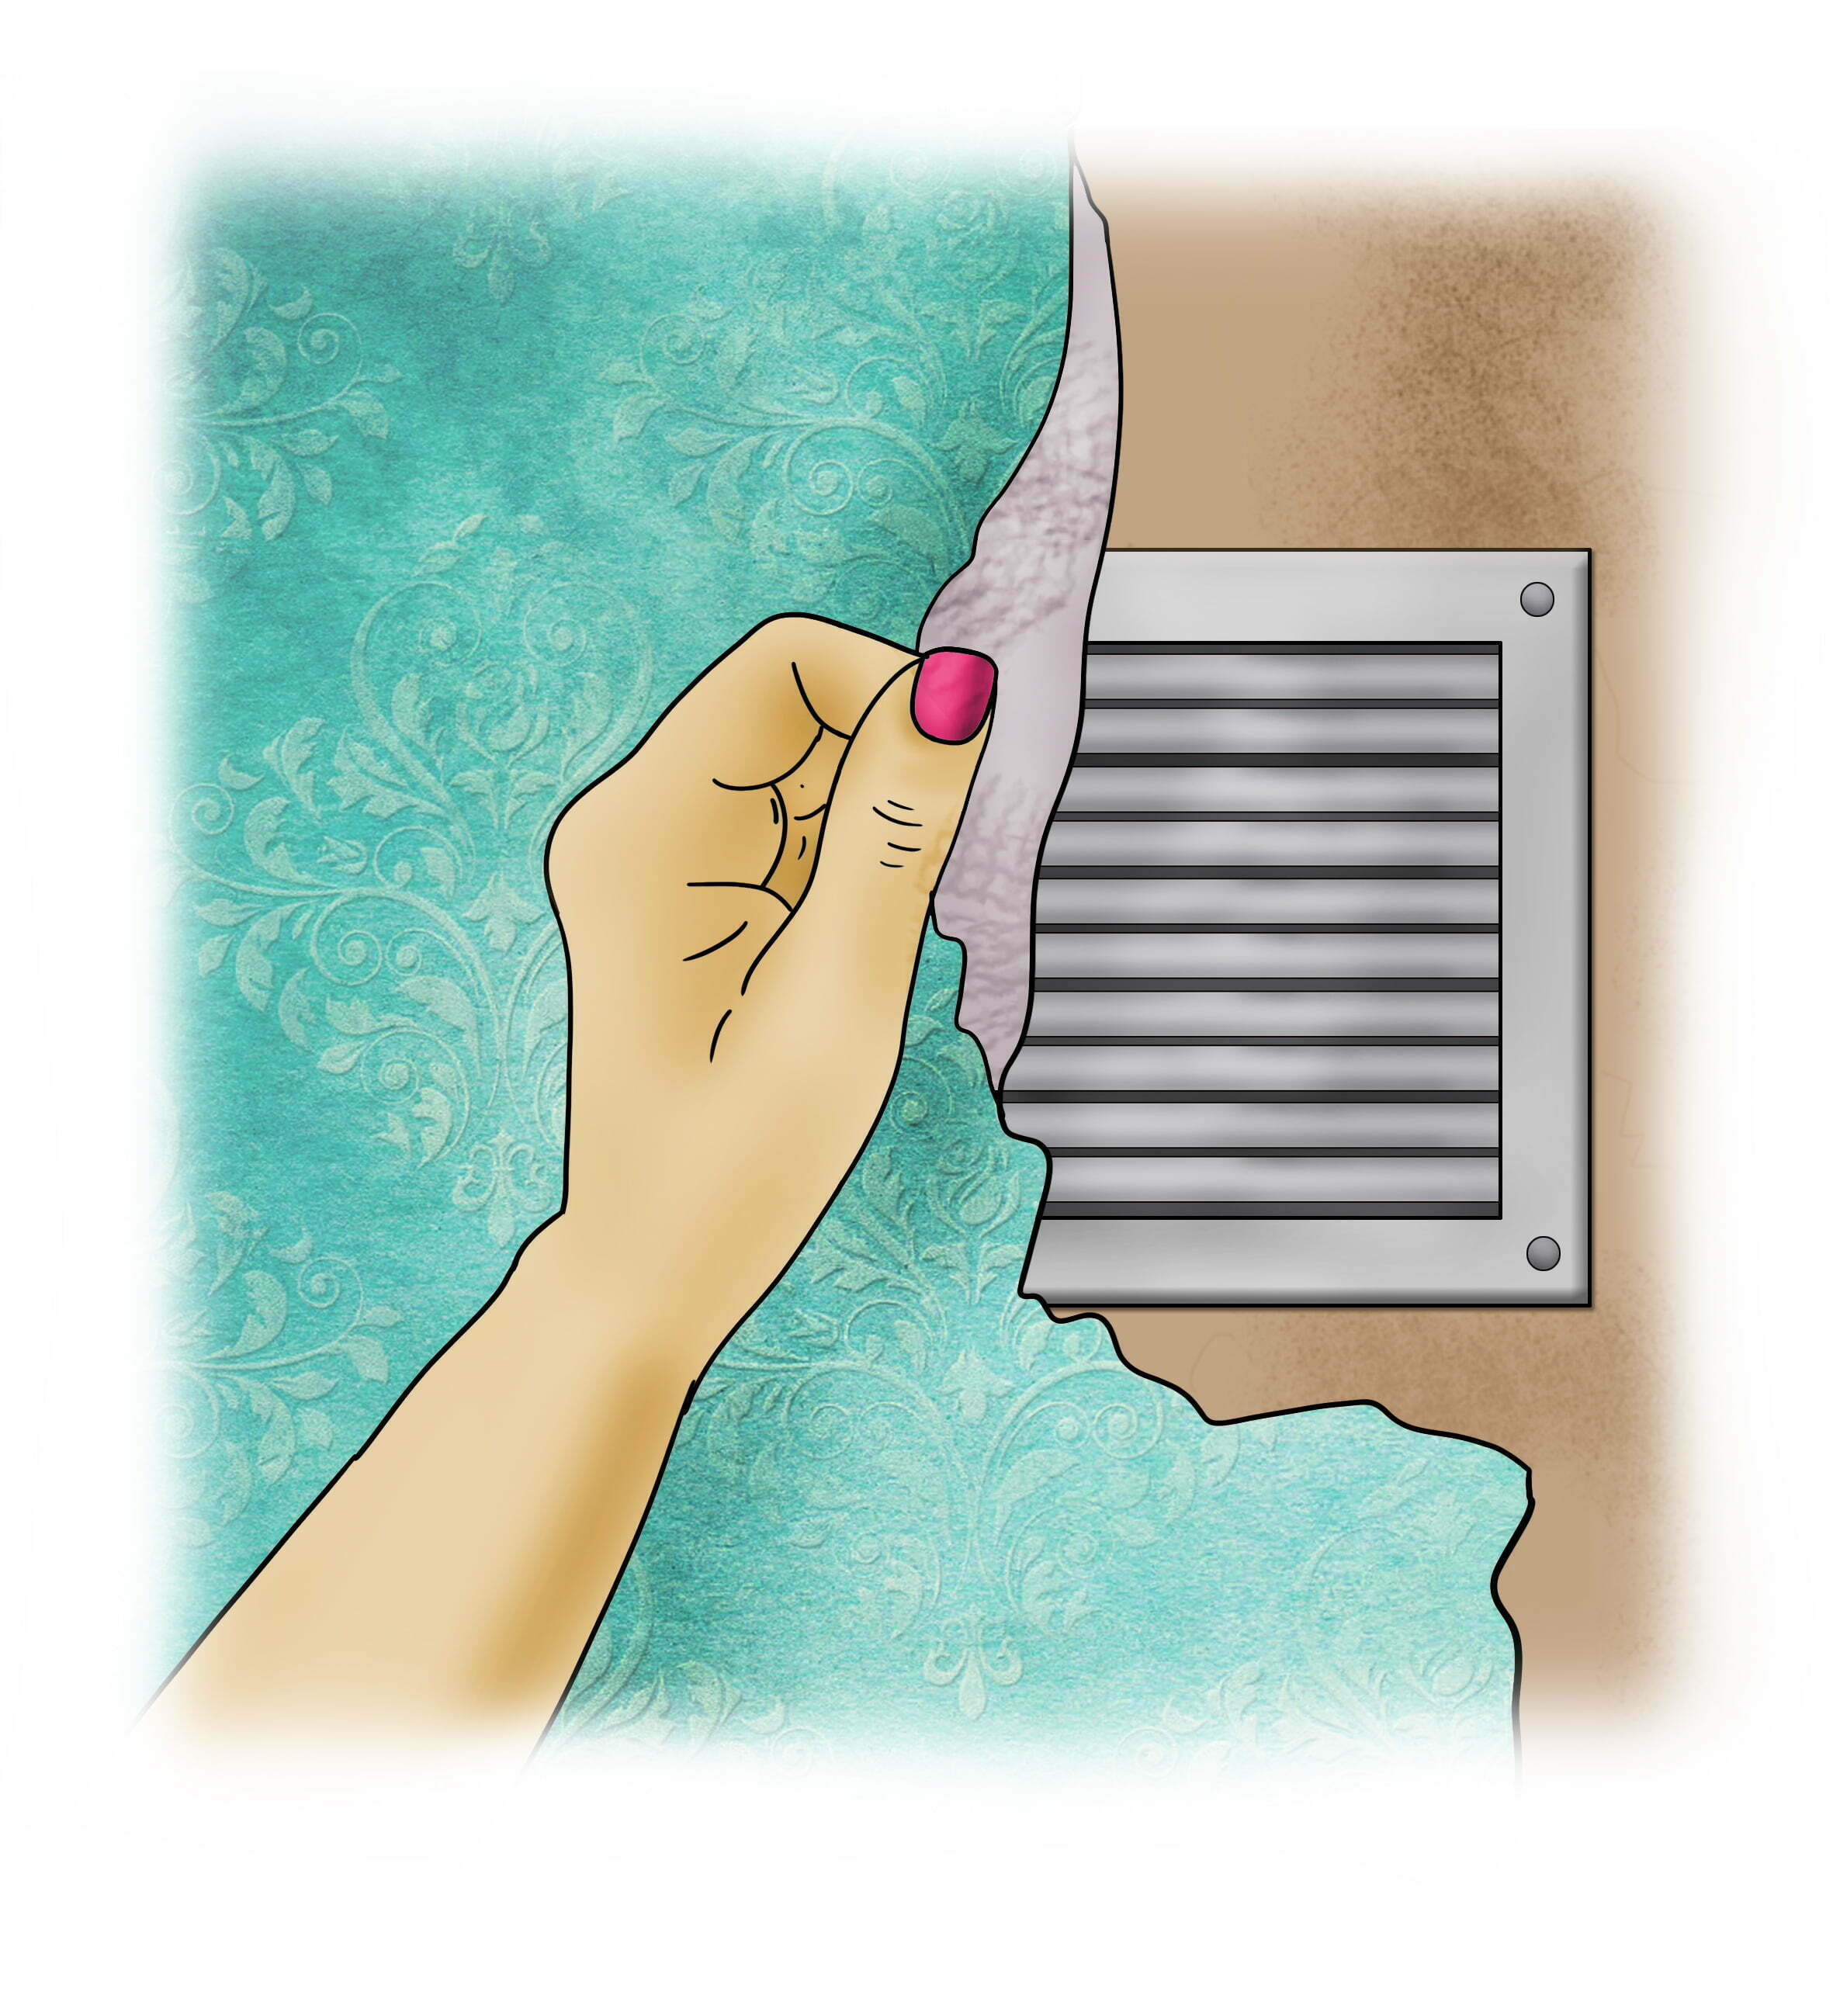 Remove coverings on any wall ventilation